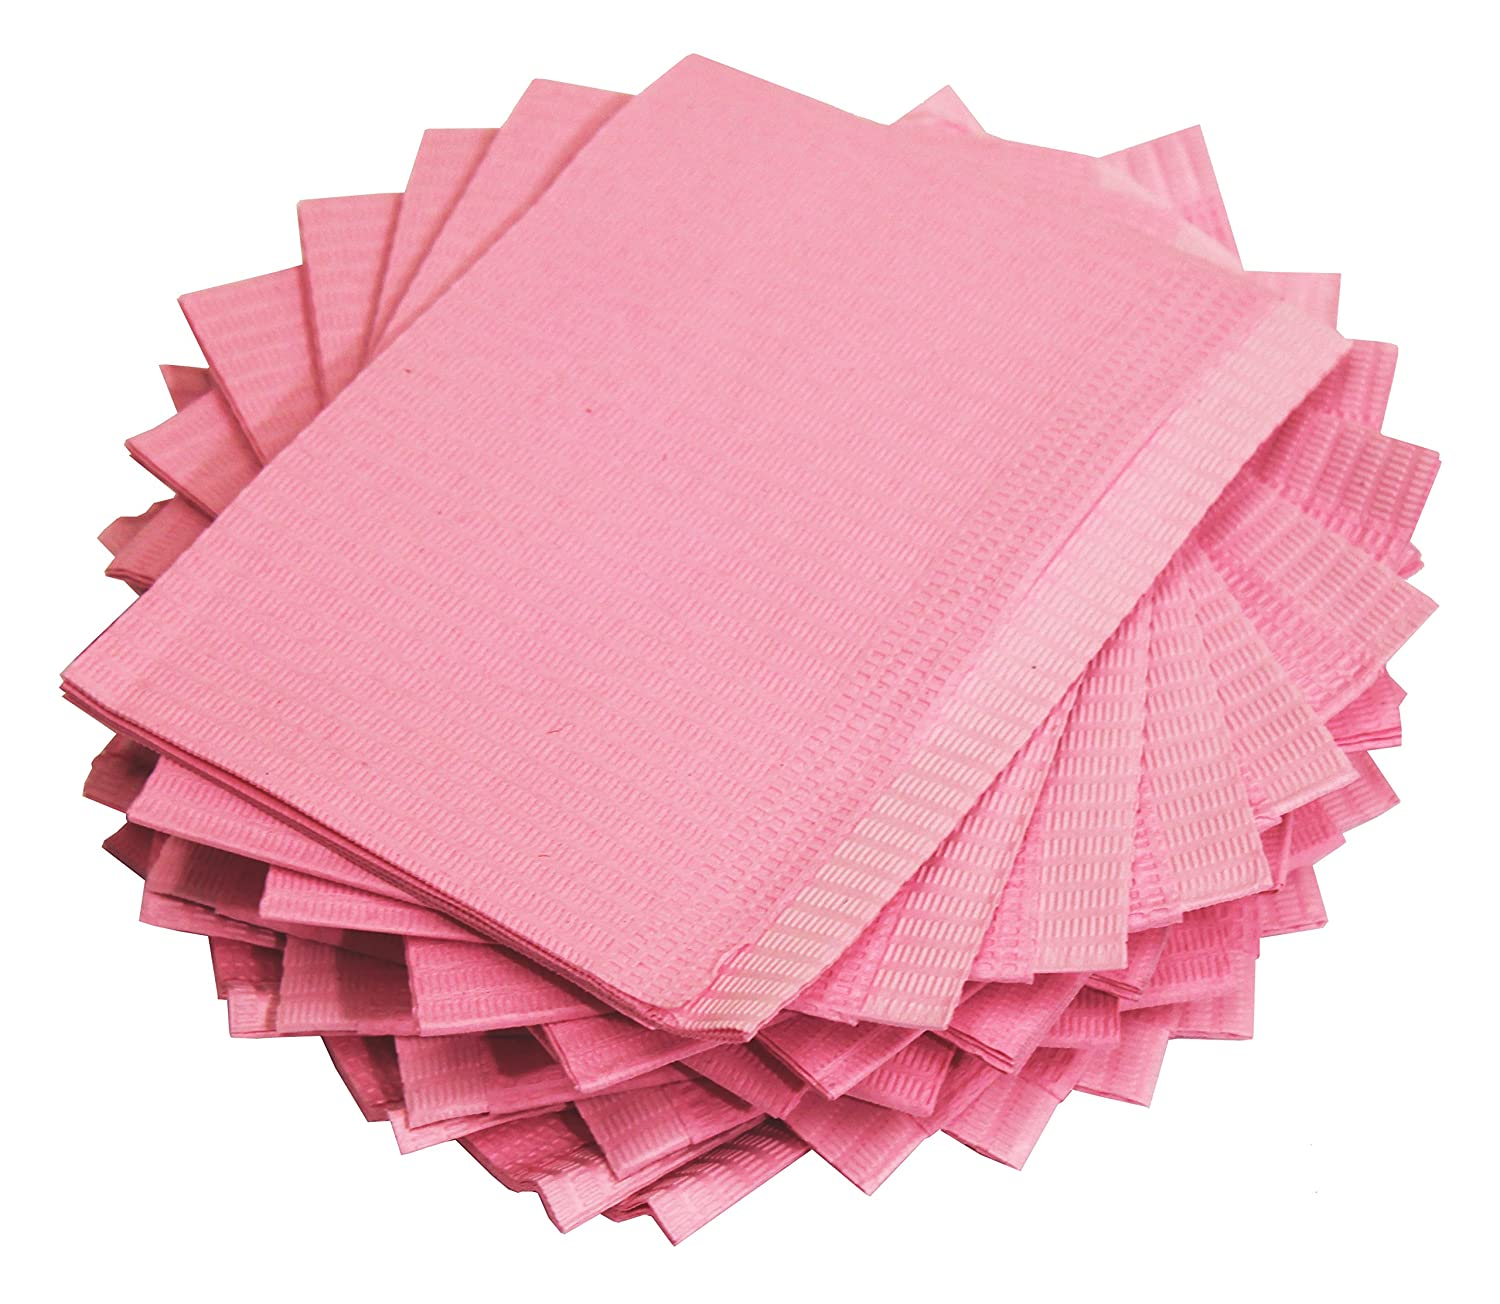 Adenna Dental Bibs/Lap Cloths, Pink (Box of 500)